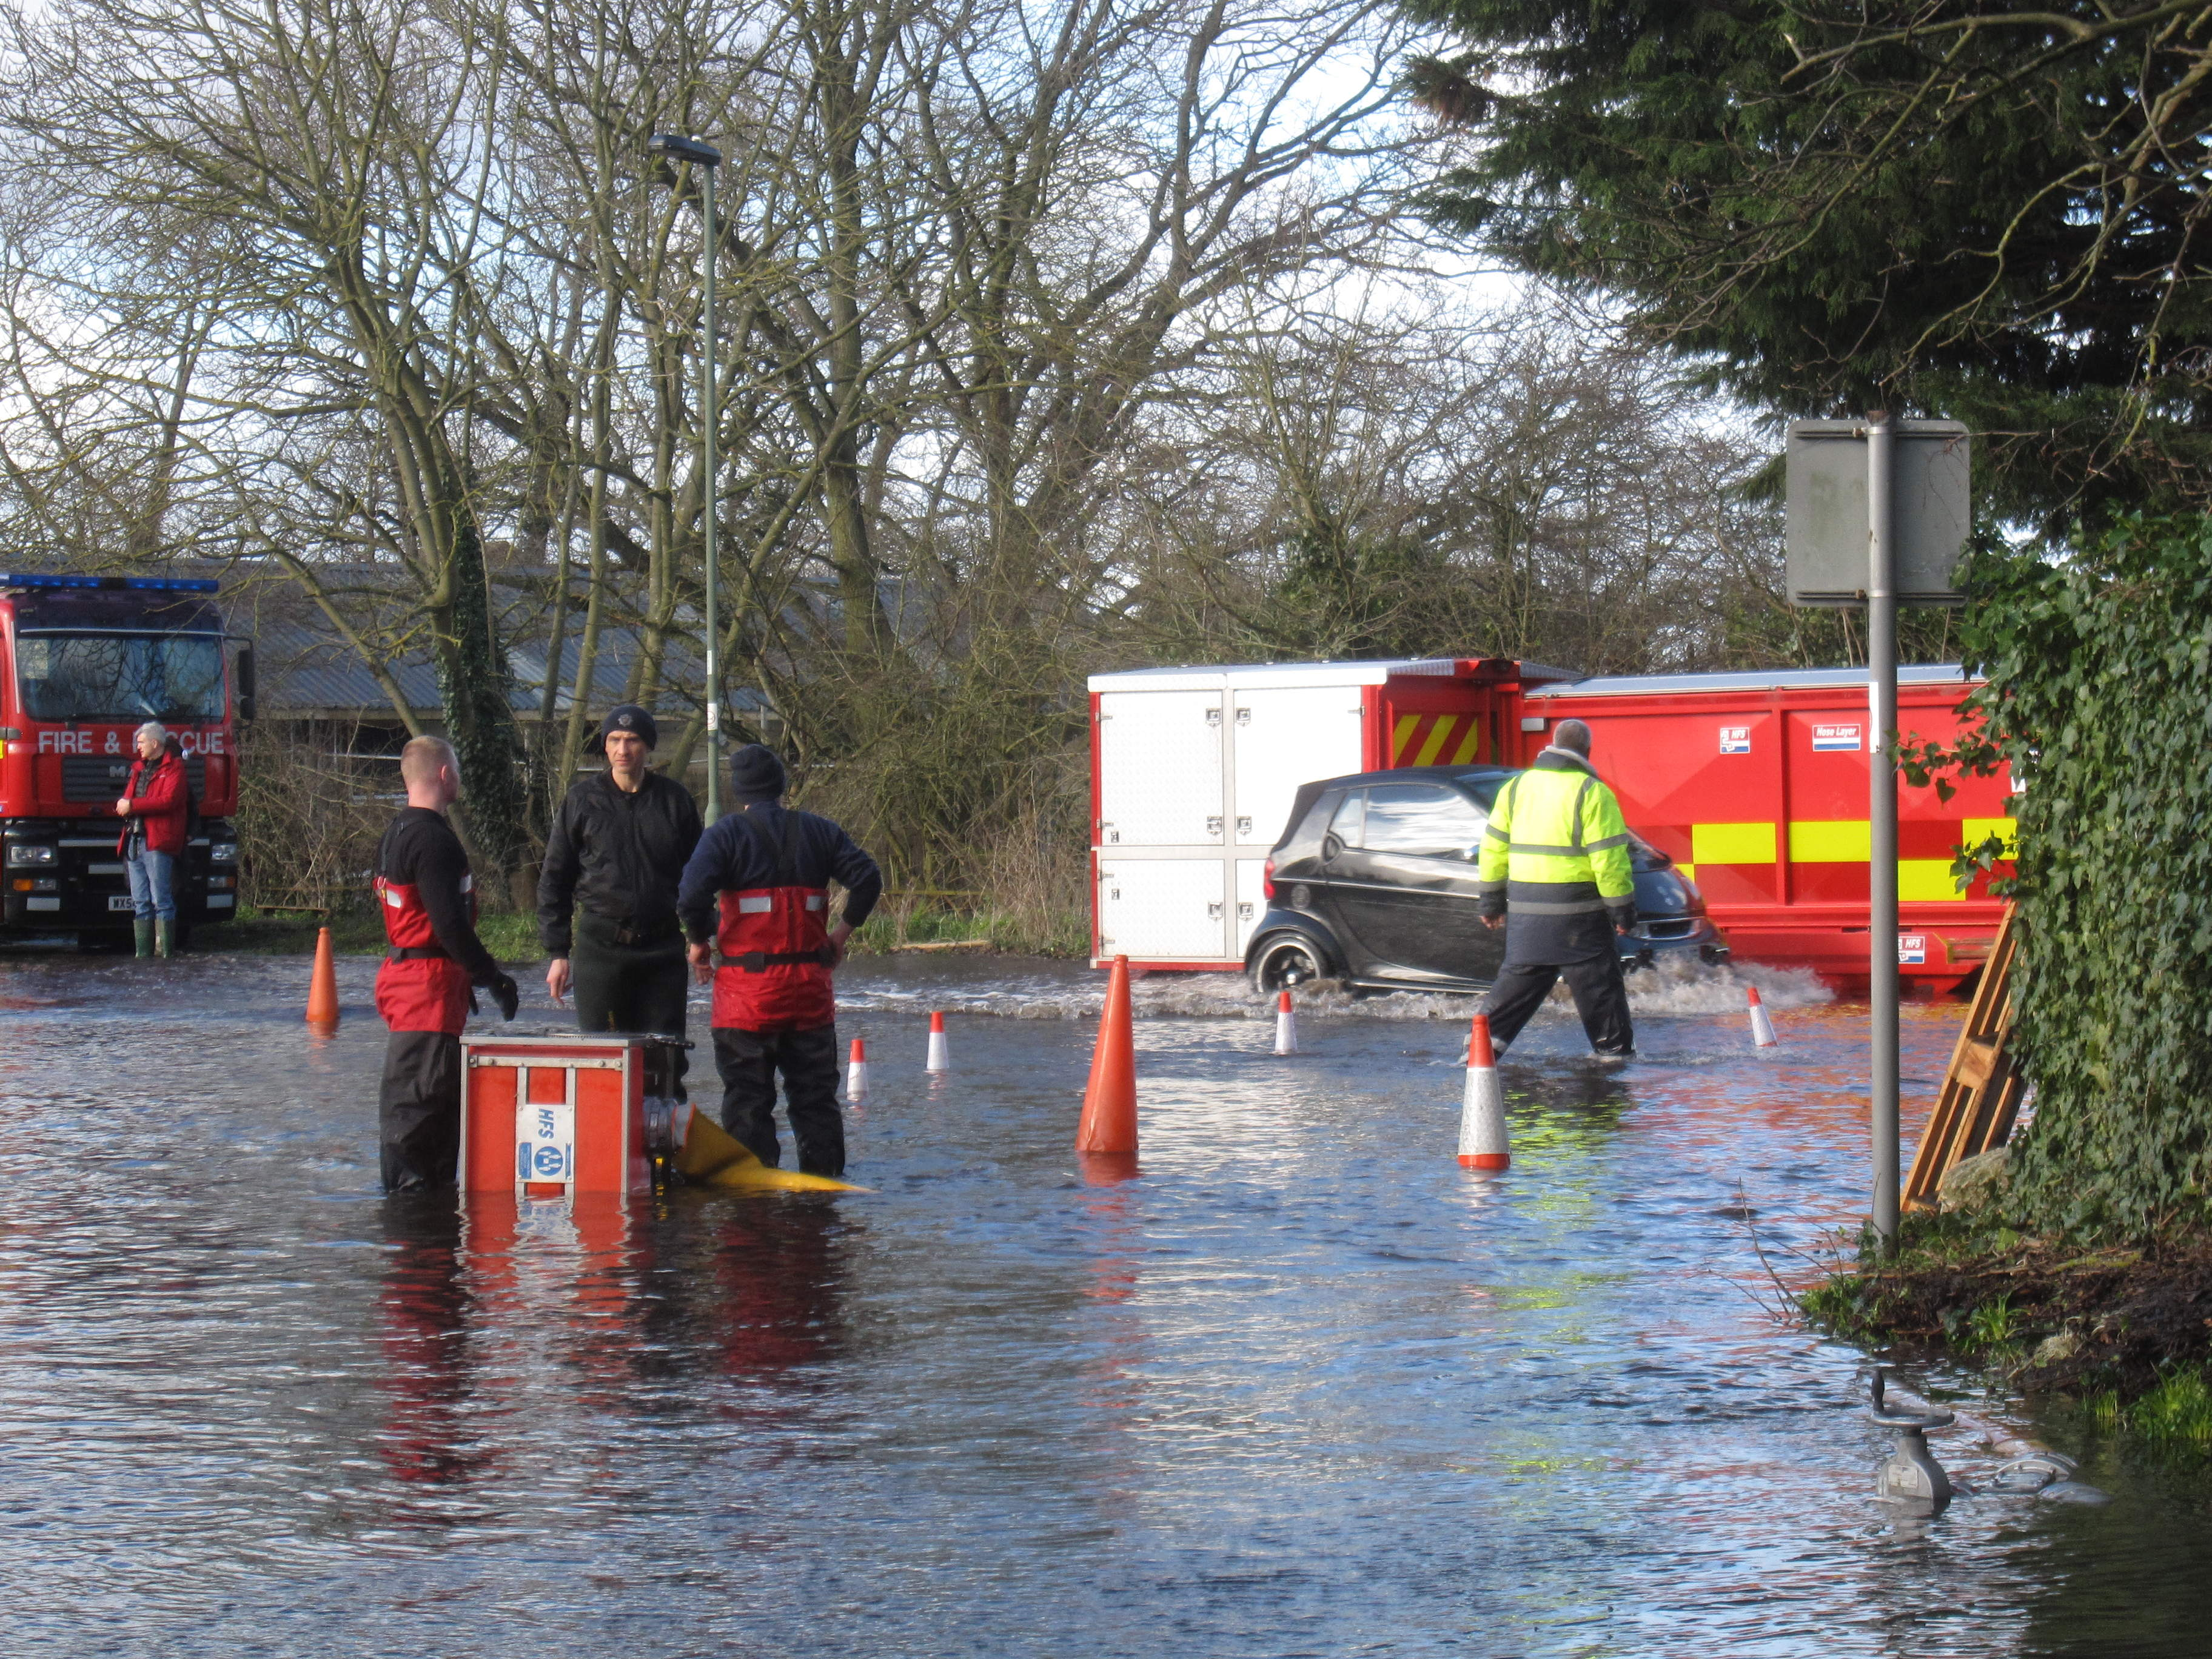 Adam Afriyie Welcomes New Winter Flooding Report